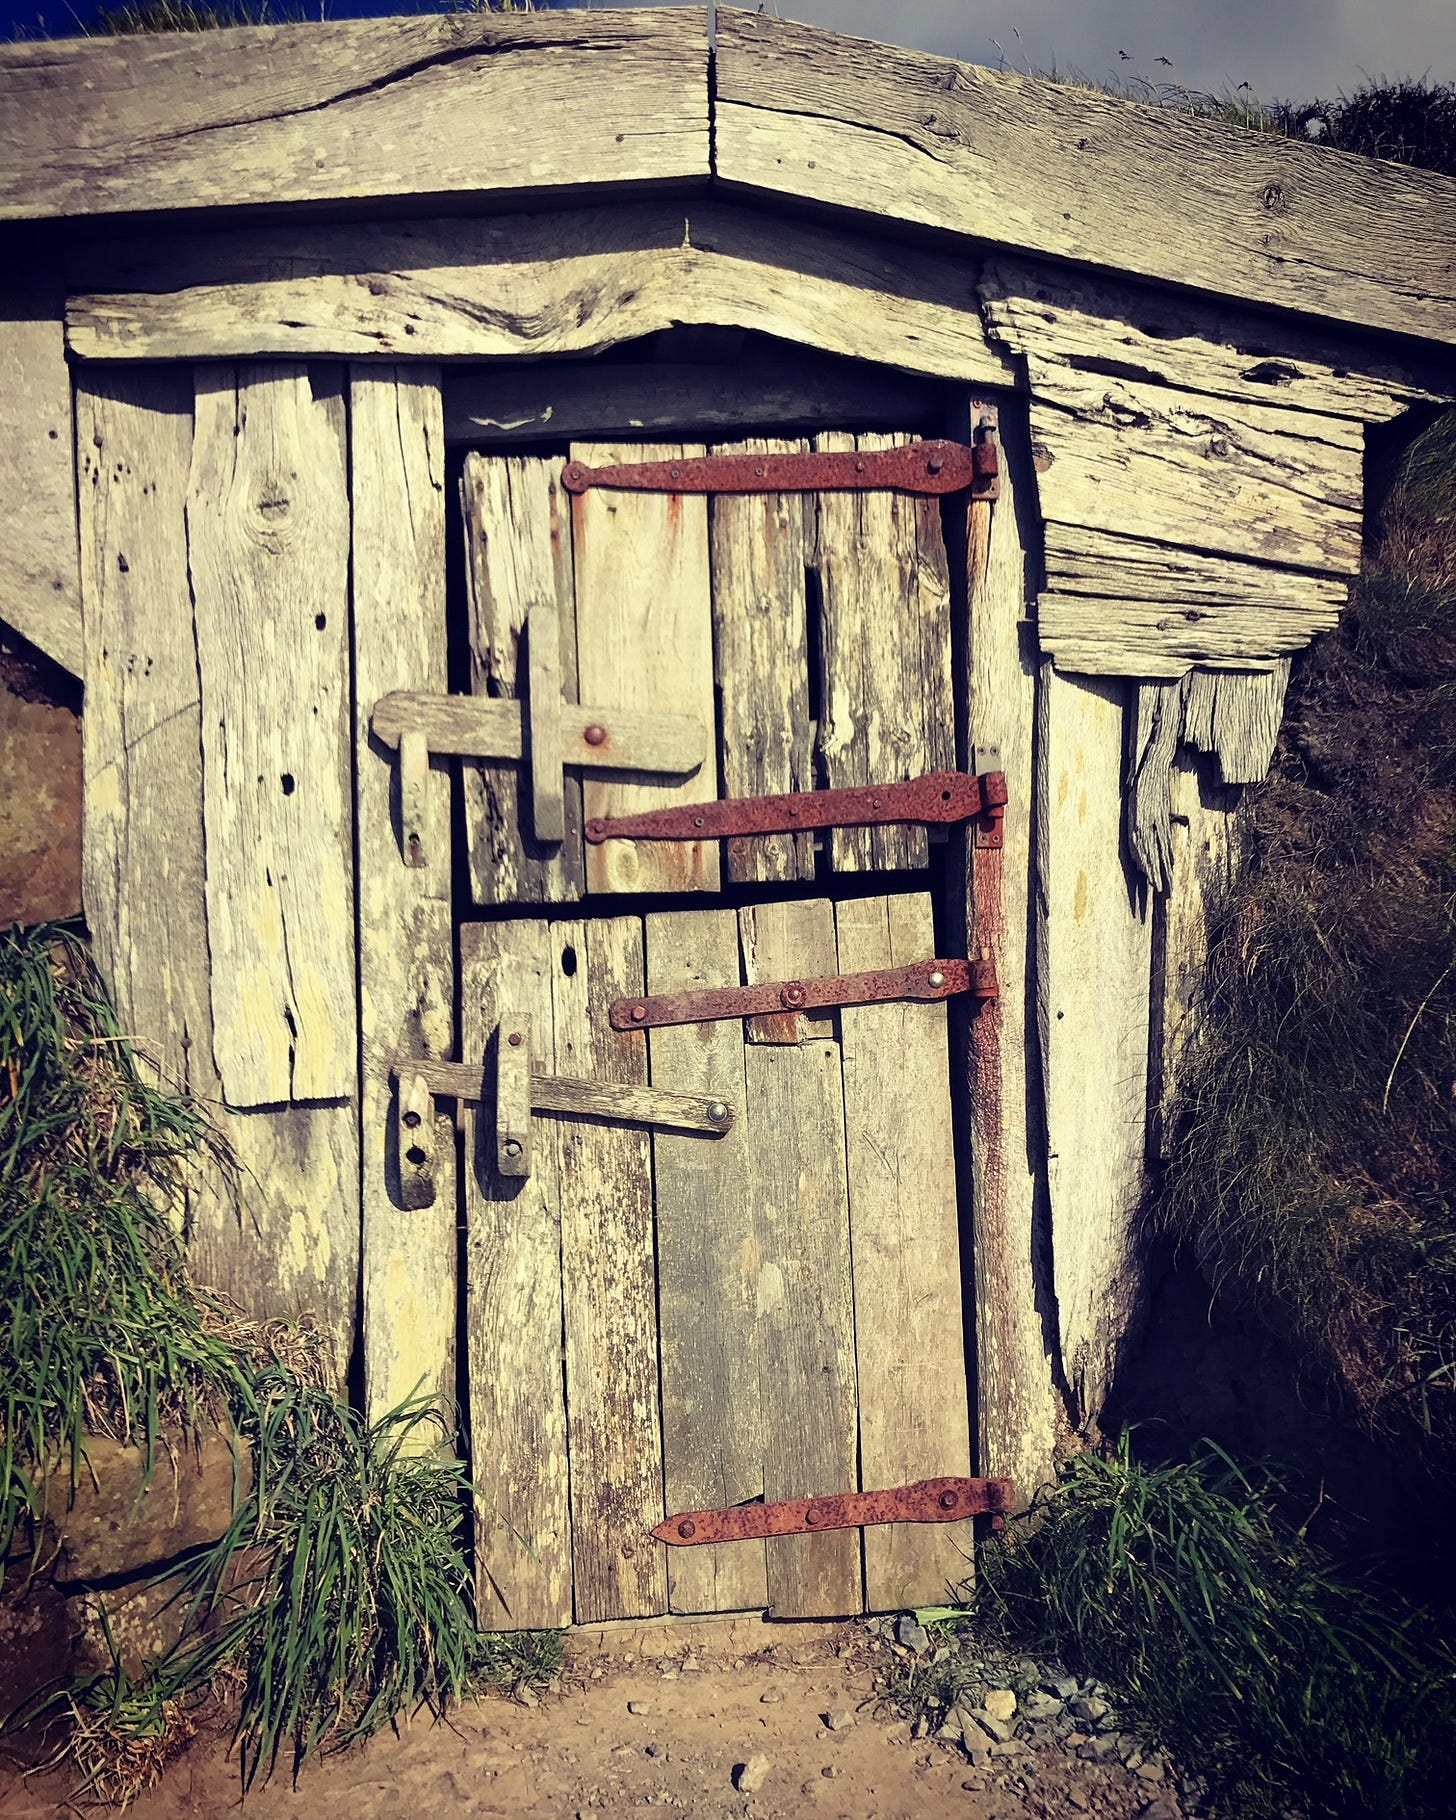 A ramshackle hut with a stable door, made of driftwood